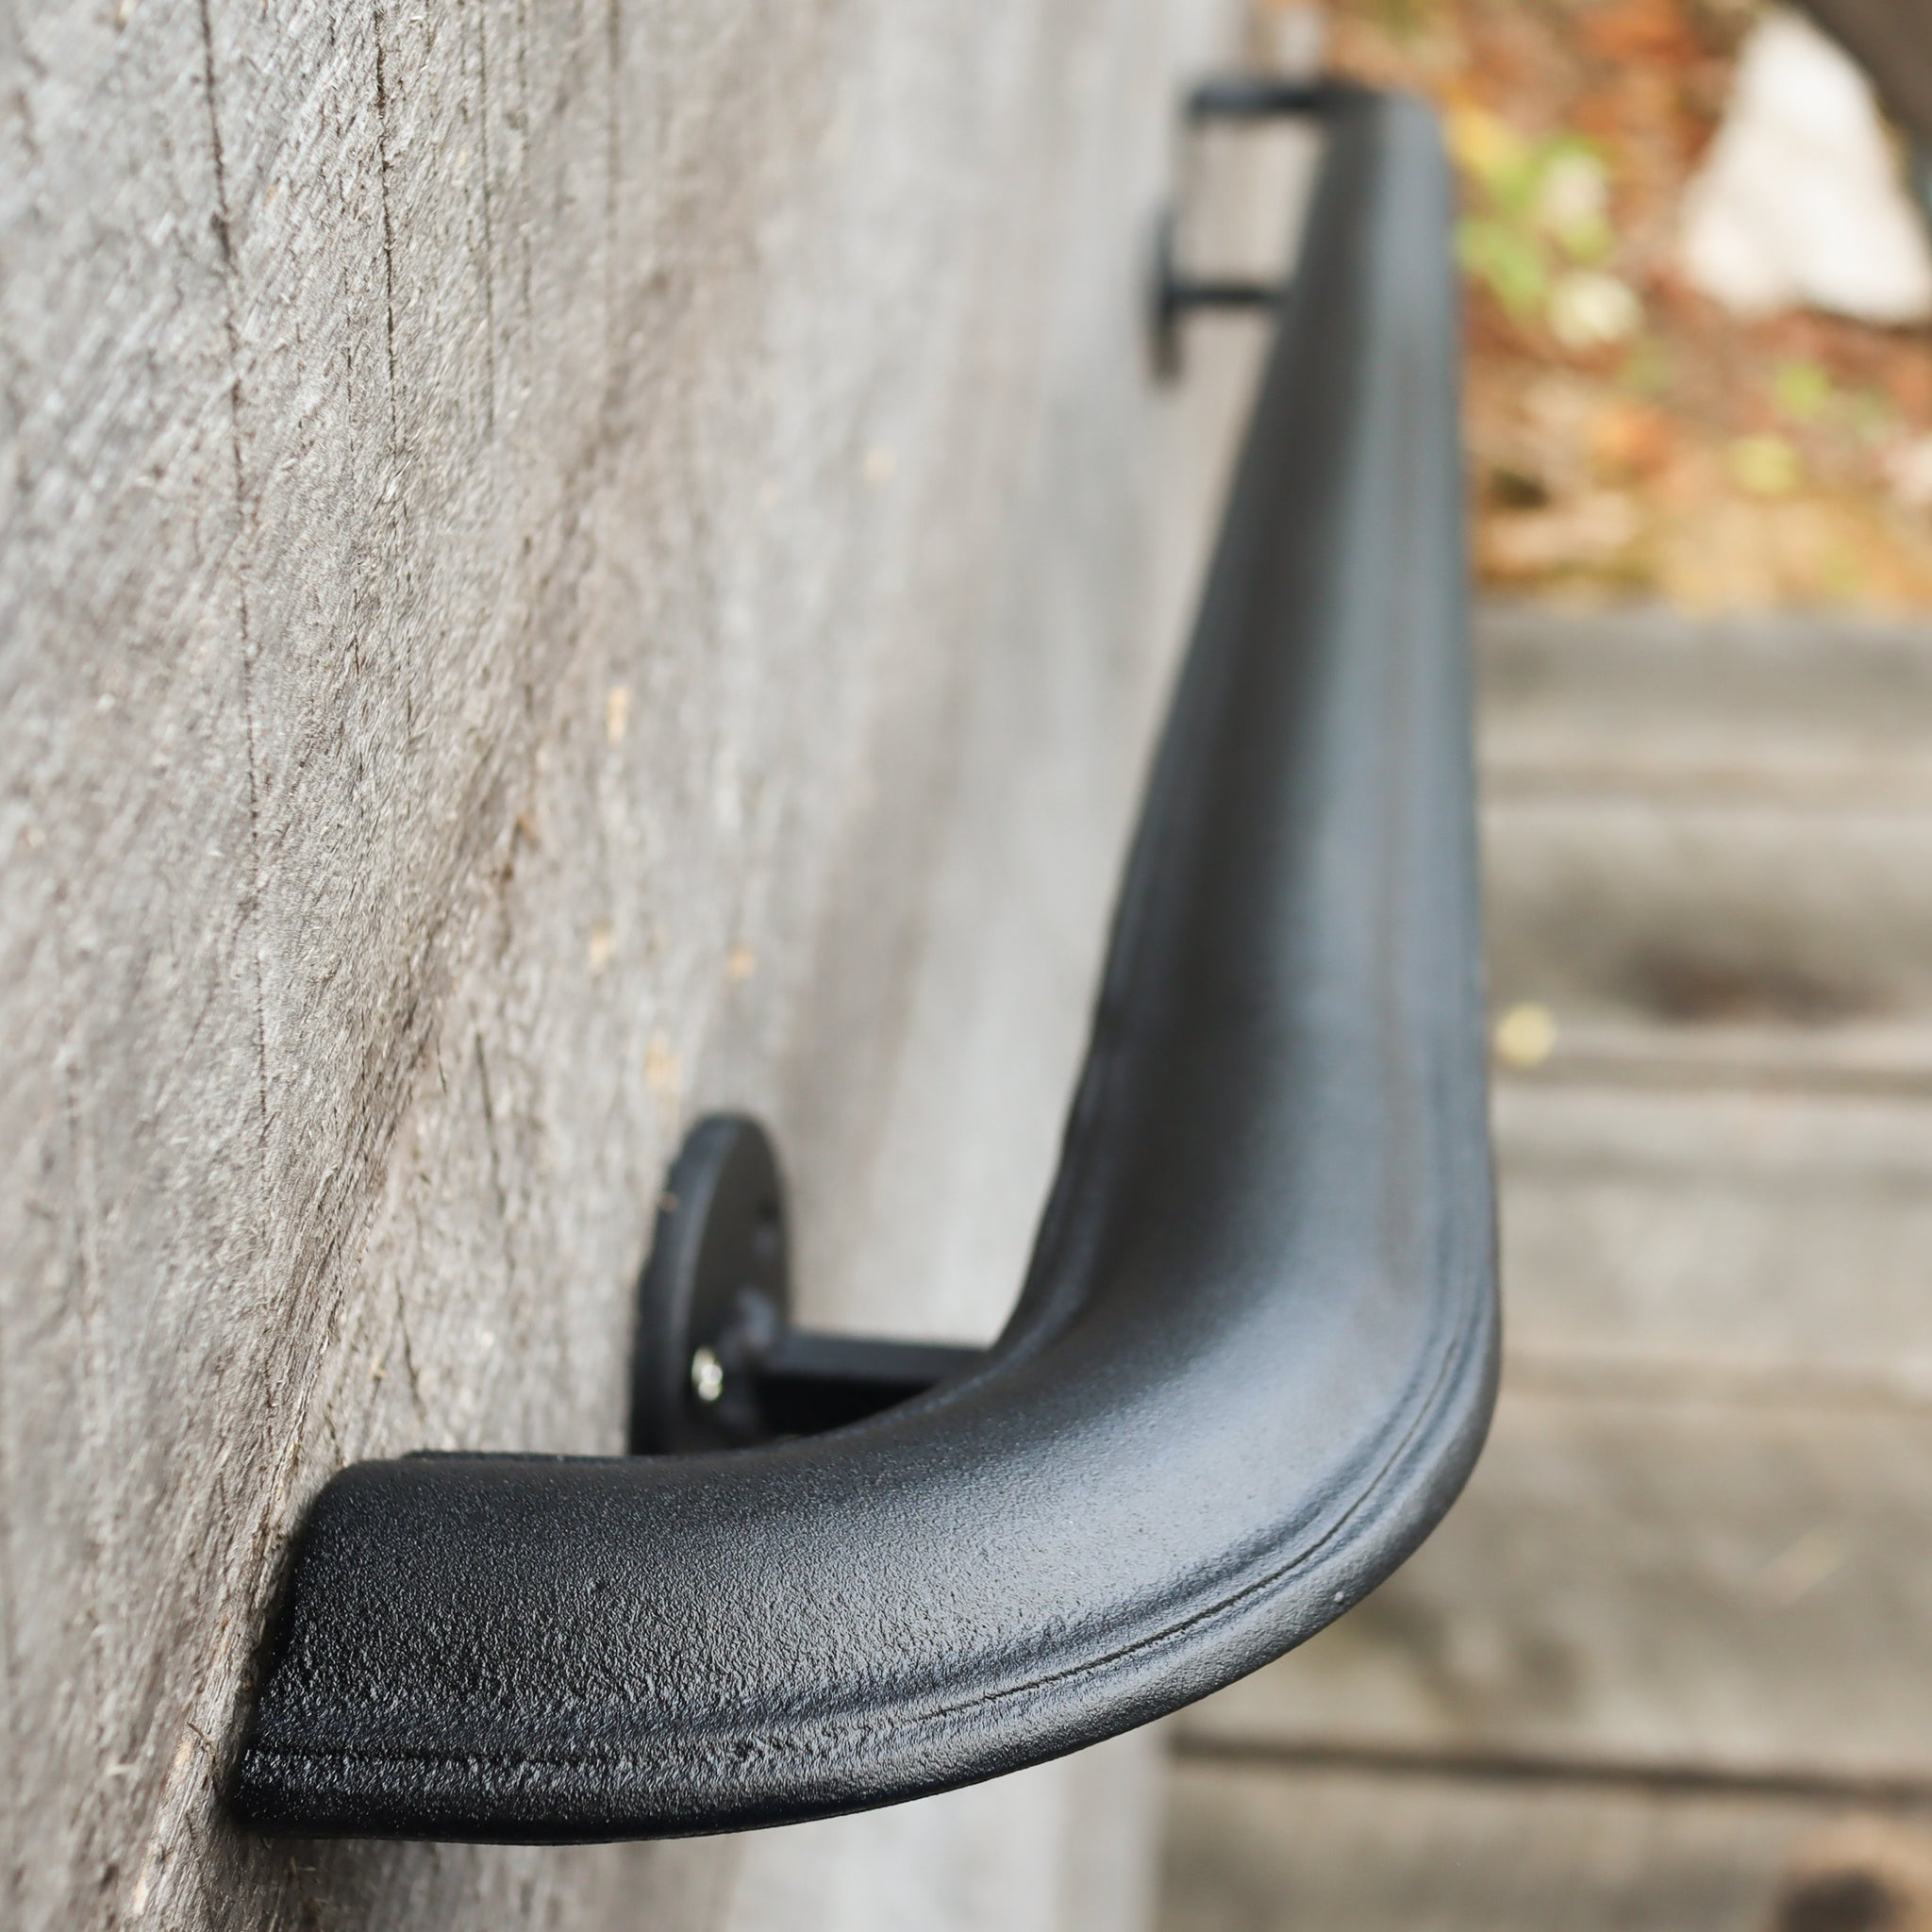 Custom Length Metal Handrail with Curved Returns - ADA Compliant Return Wall Mount Grab Rail - Victorian Stair Rail